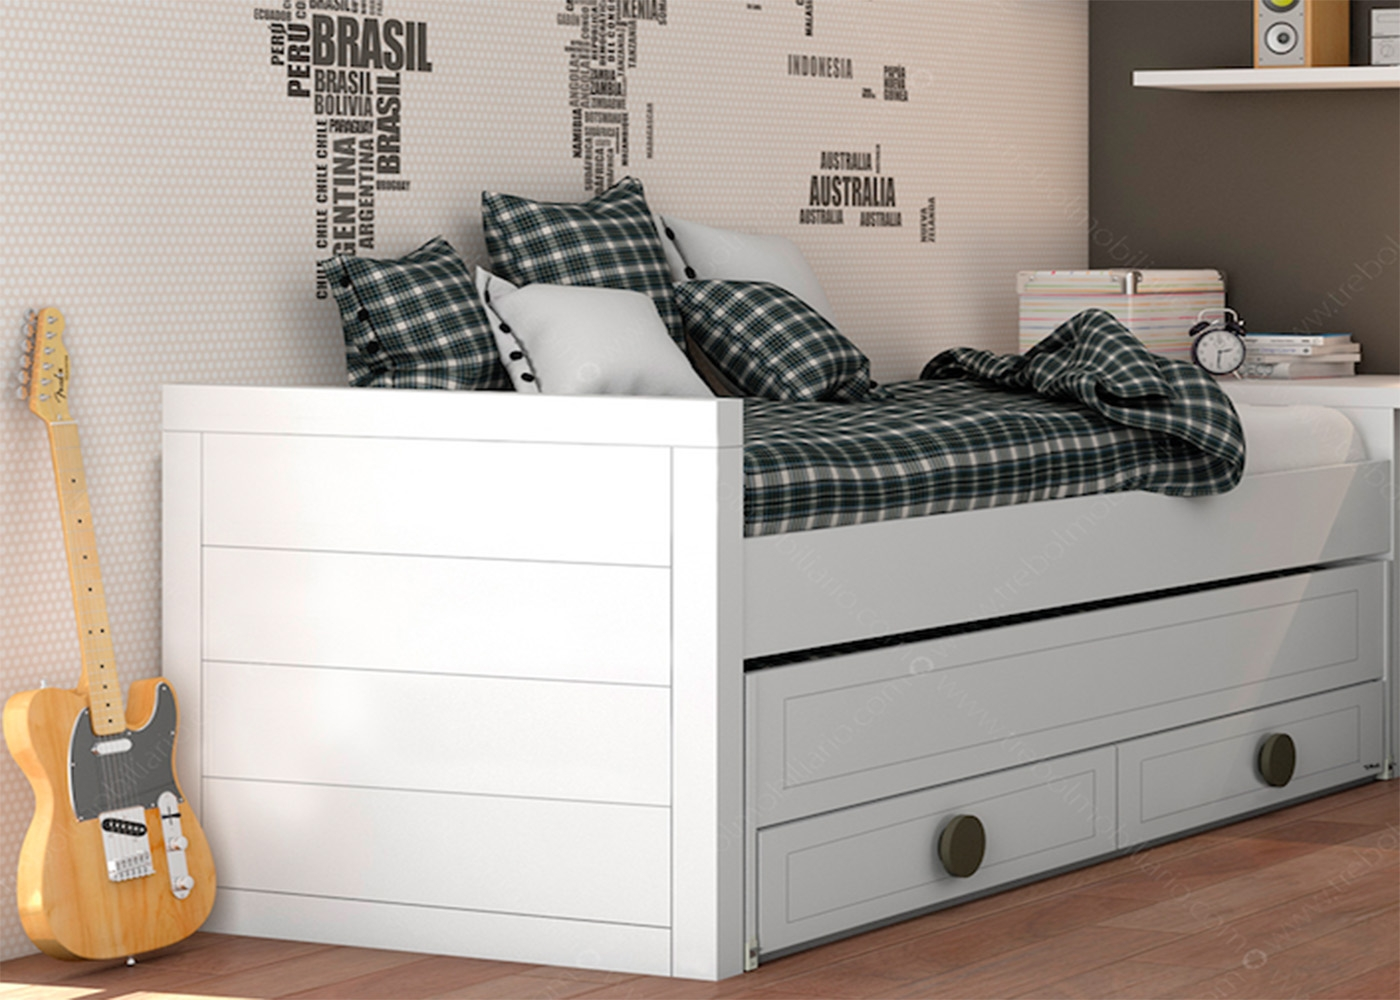 chambre enfant sur mesure et de haute qualit chez ksl living. Black Bedroom Furniture Sets. Home Design Ideas